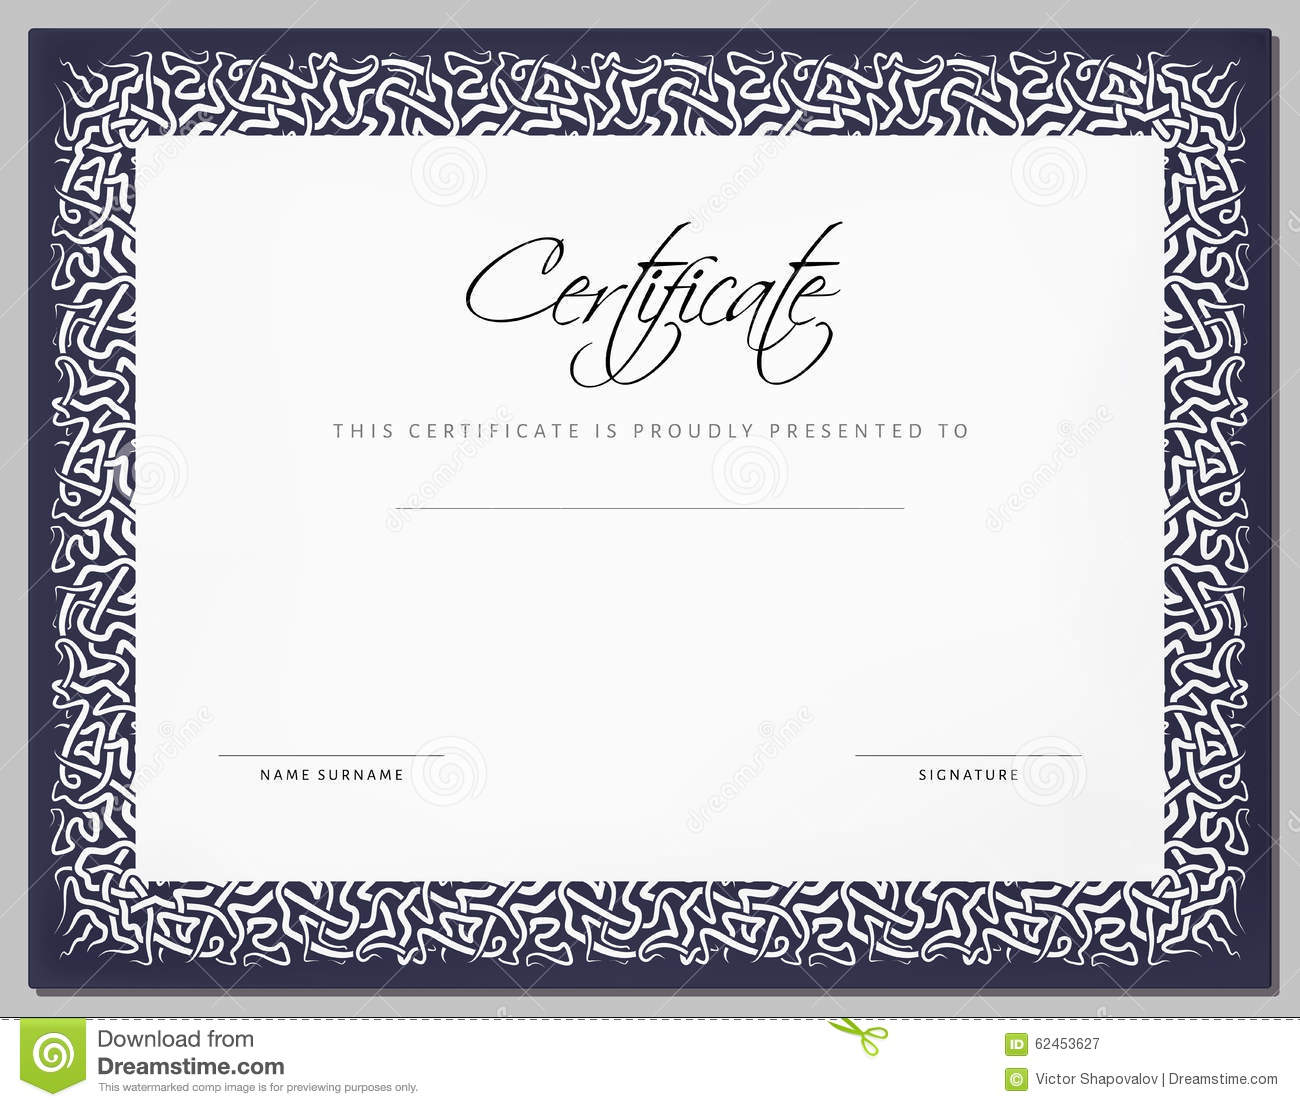 Vintage gift certificate template 28 images voucher template vintage gift certificate template royalty free stock photography gift vintage certificate yadclub Choice Image